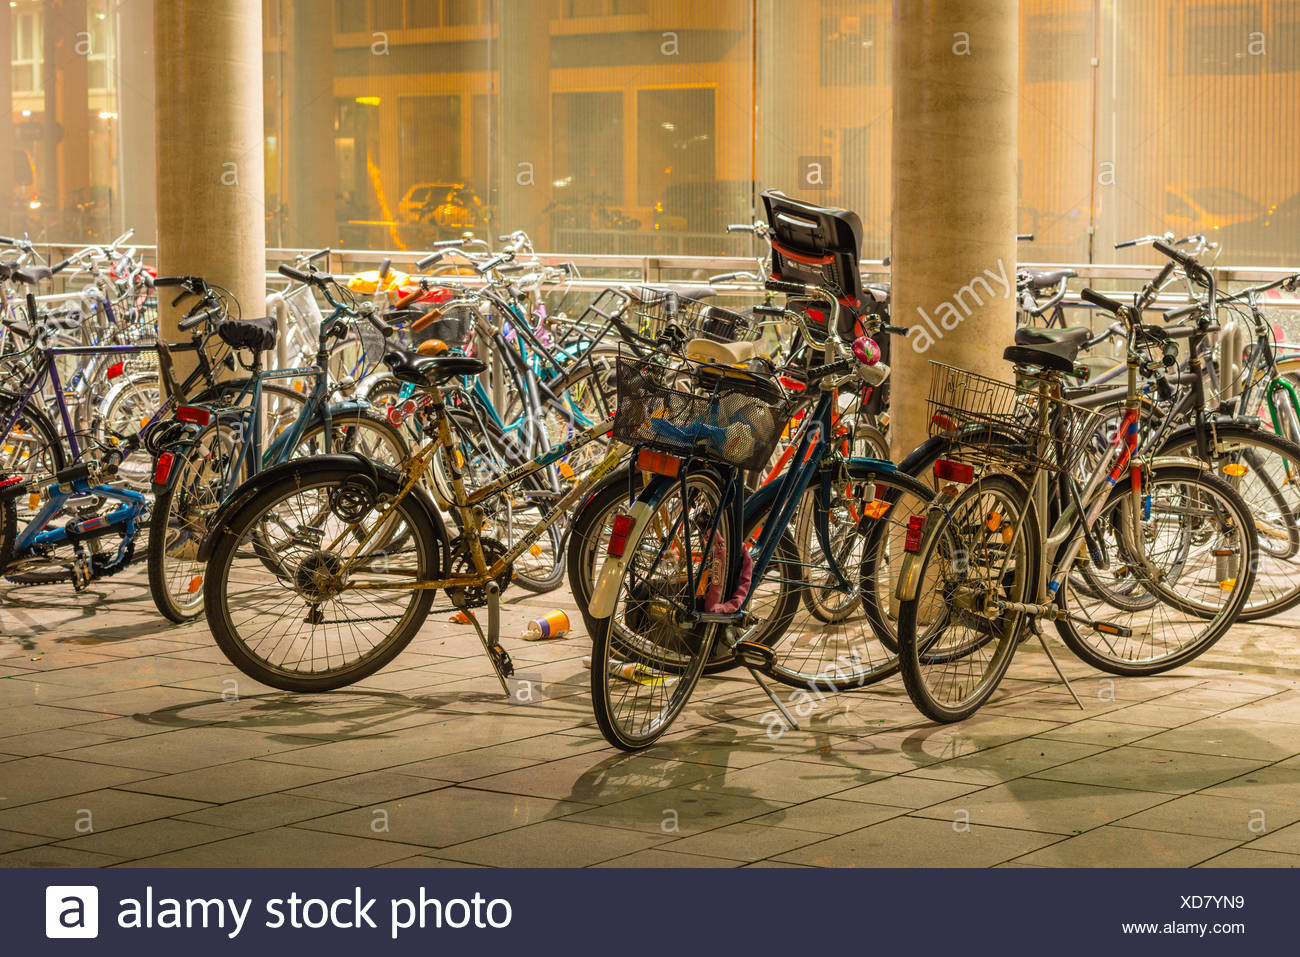 parked bicycles, lights, illumination, Breslau place, Germany, Europe, bicycle parking, bicycles, bikes, Cologne, Cologne centra - Stock Image